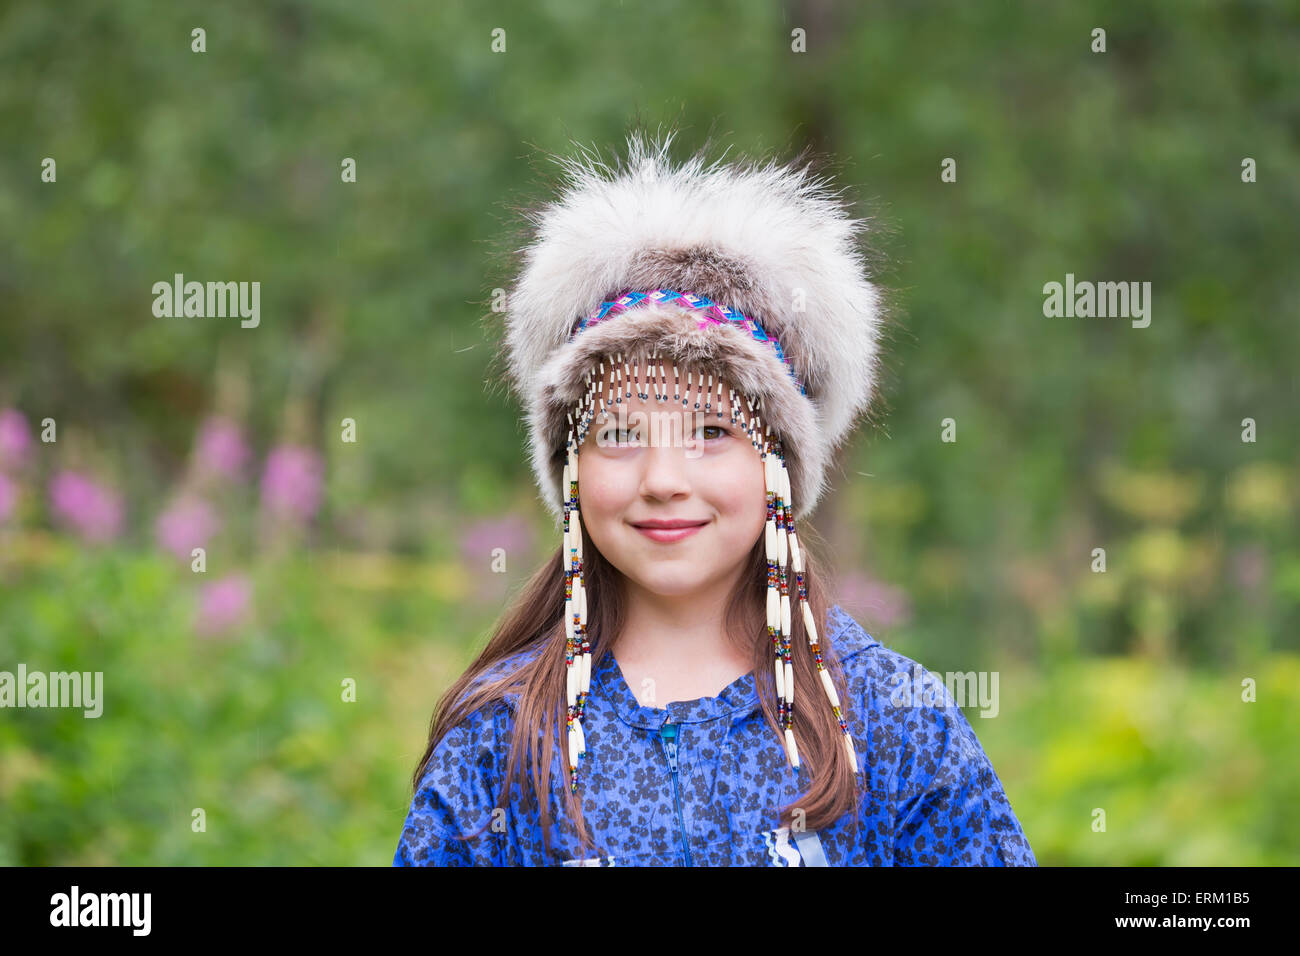 Stock Images of Tween Inupiat Eskimo girl in a traditional native ...